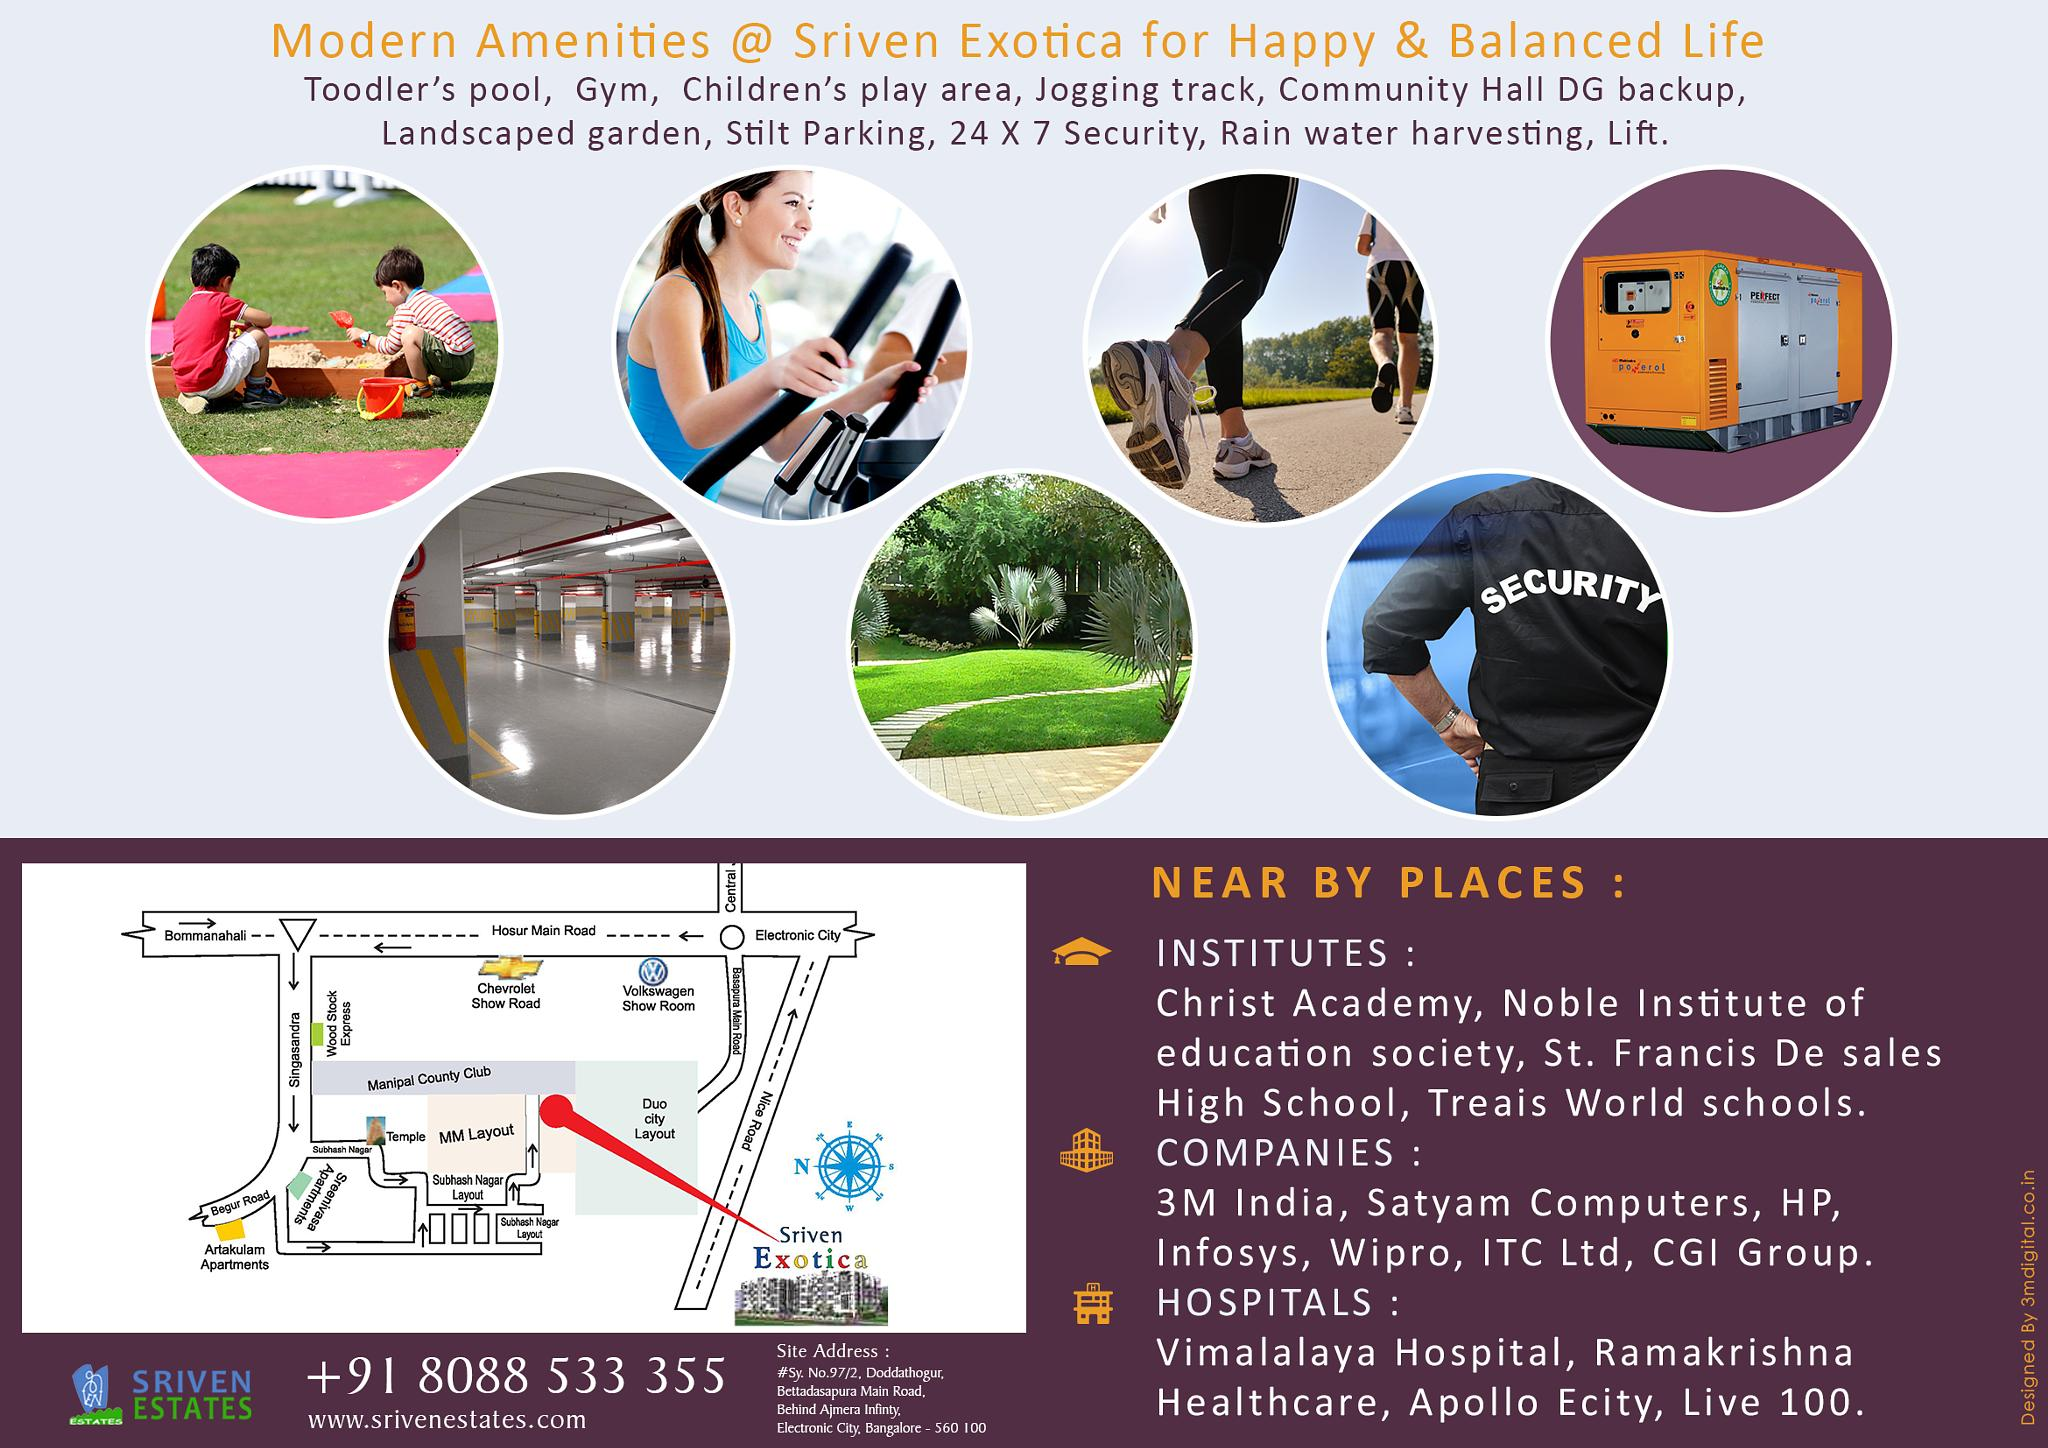 Best Apartments With best Amenities in Singasandra by Sriven Estates